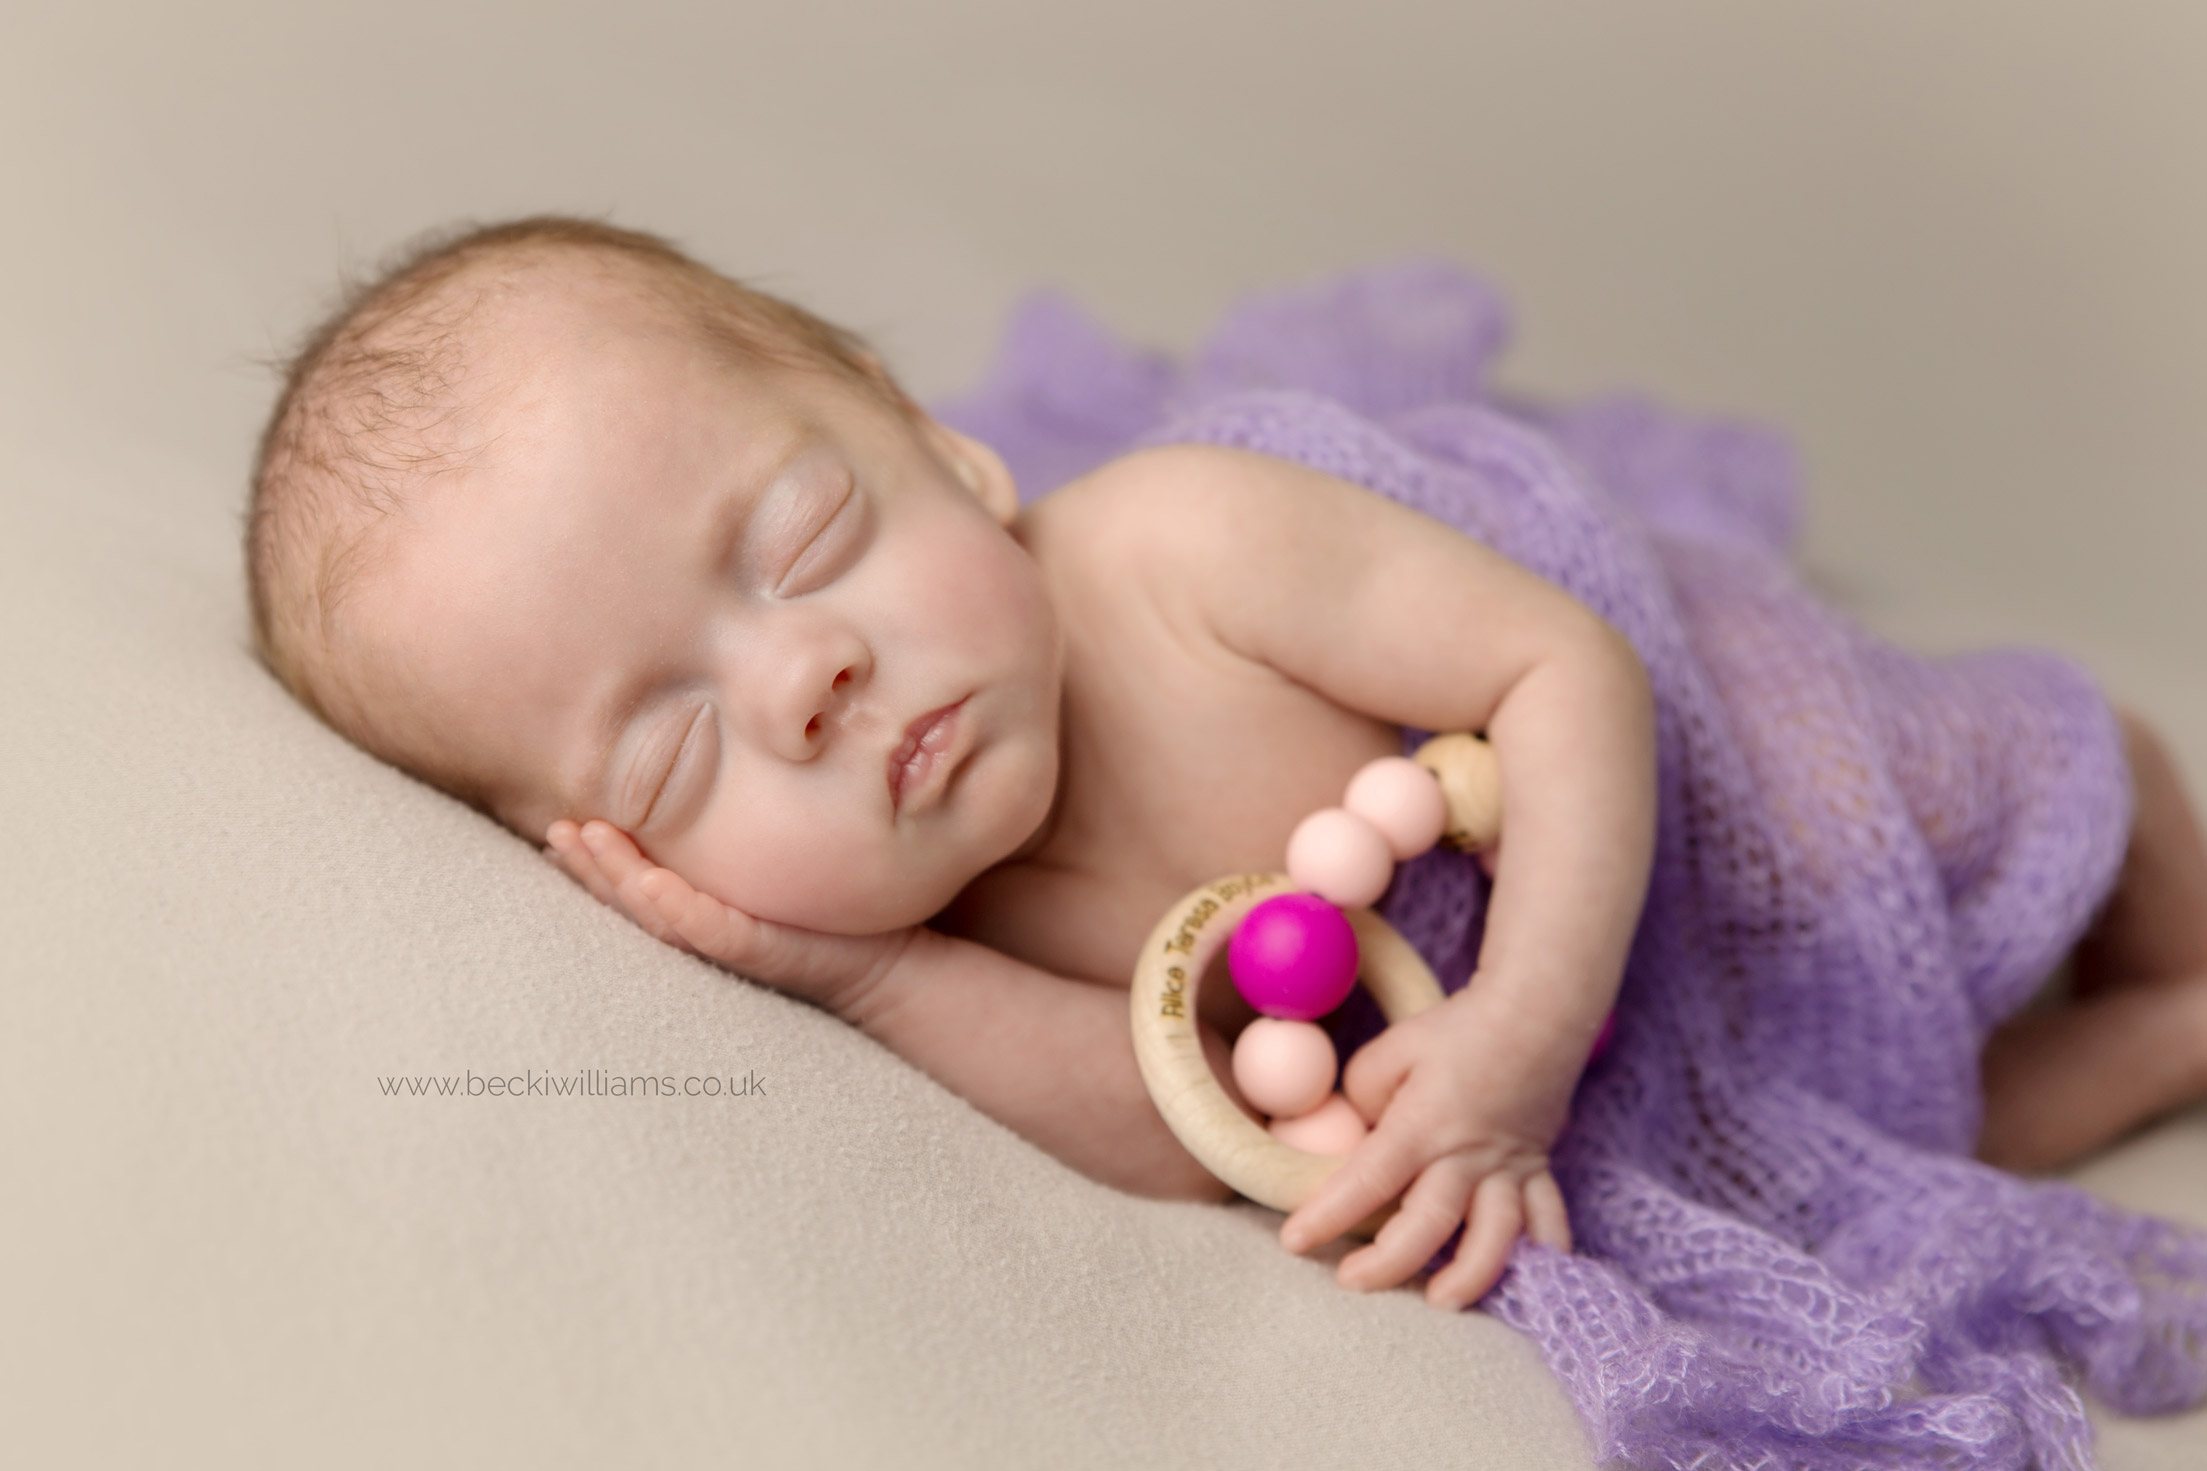 newborn baby girl lays asleep holding a wooden theether.